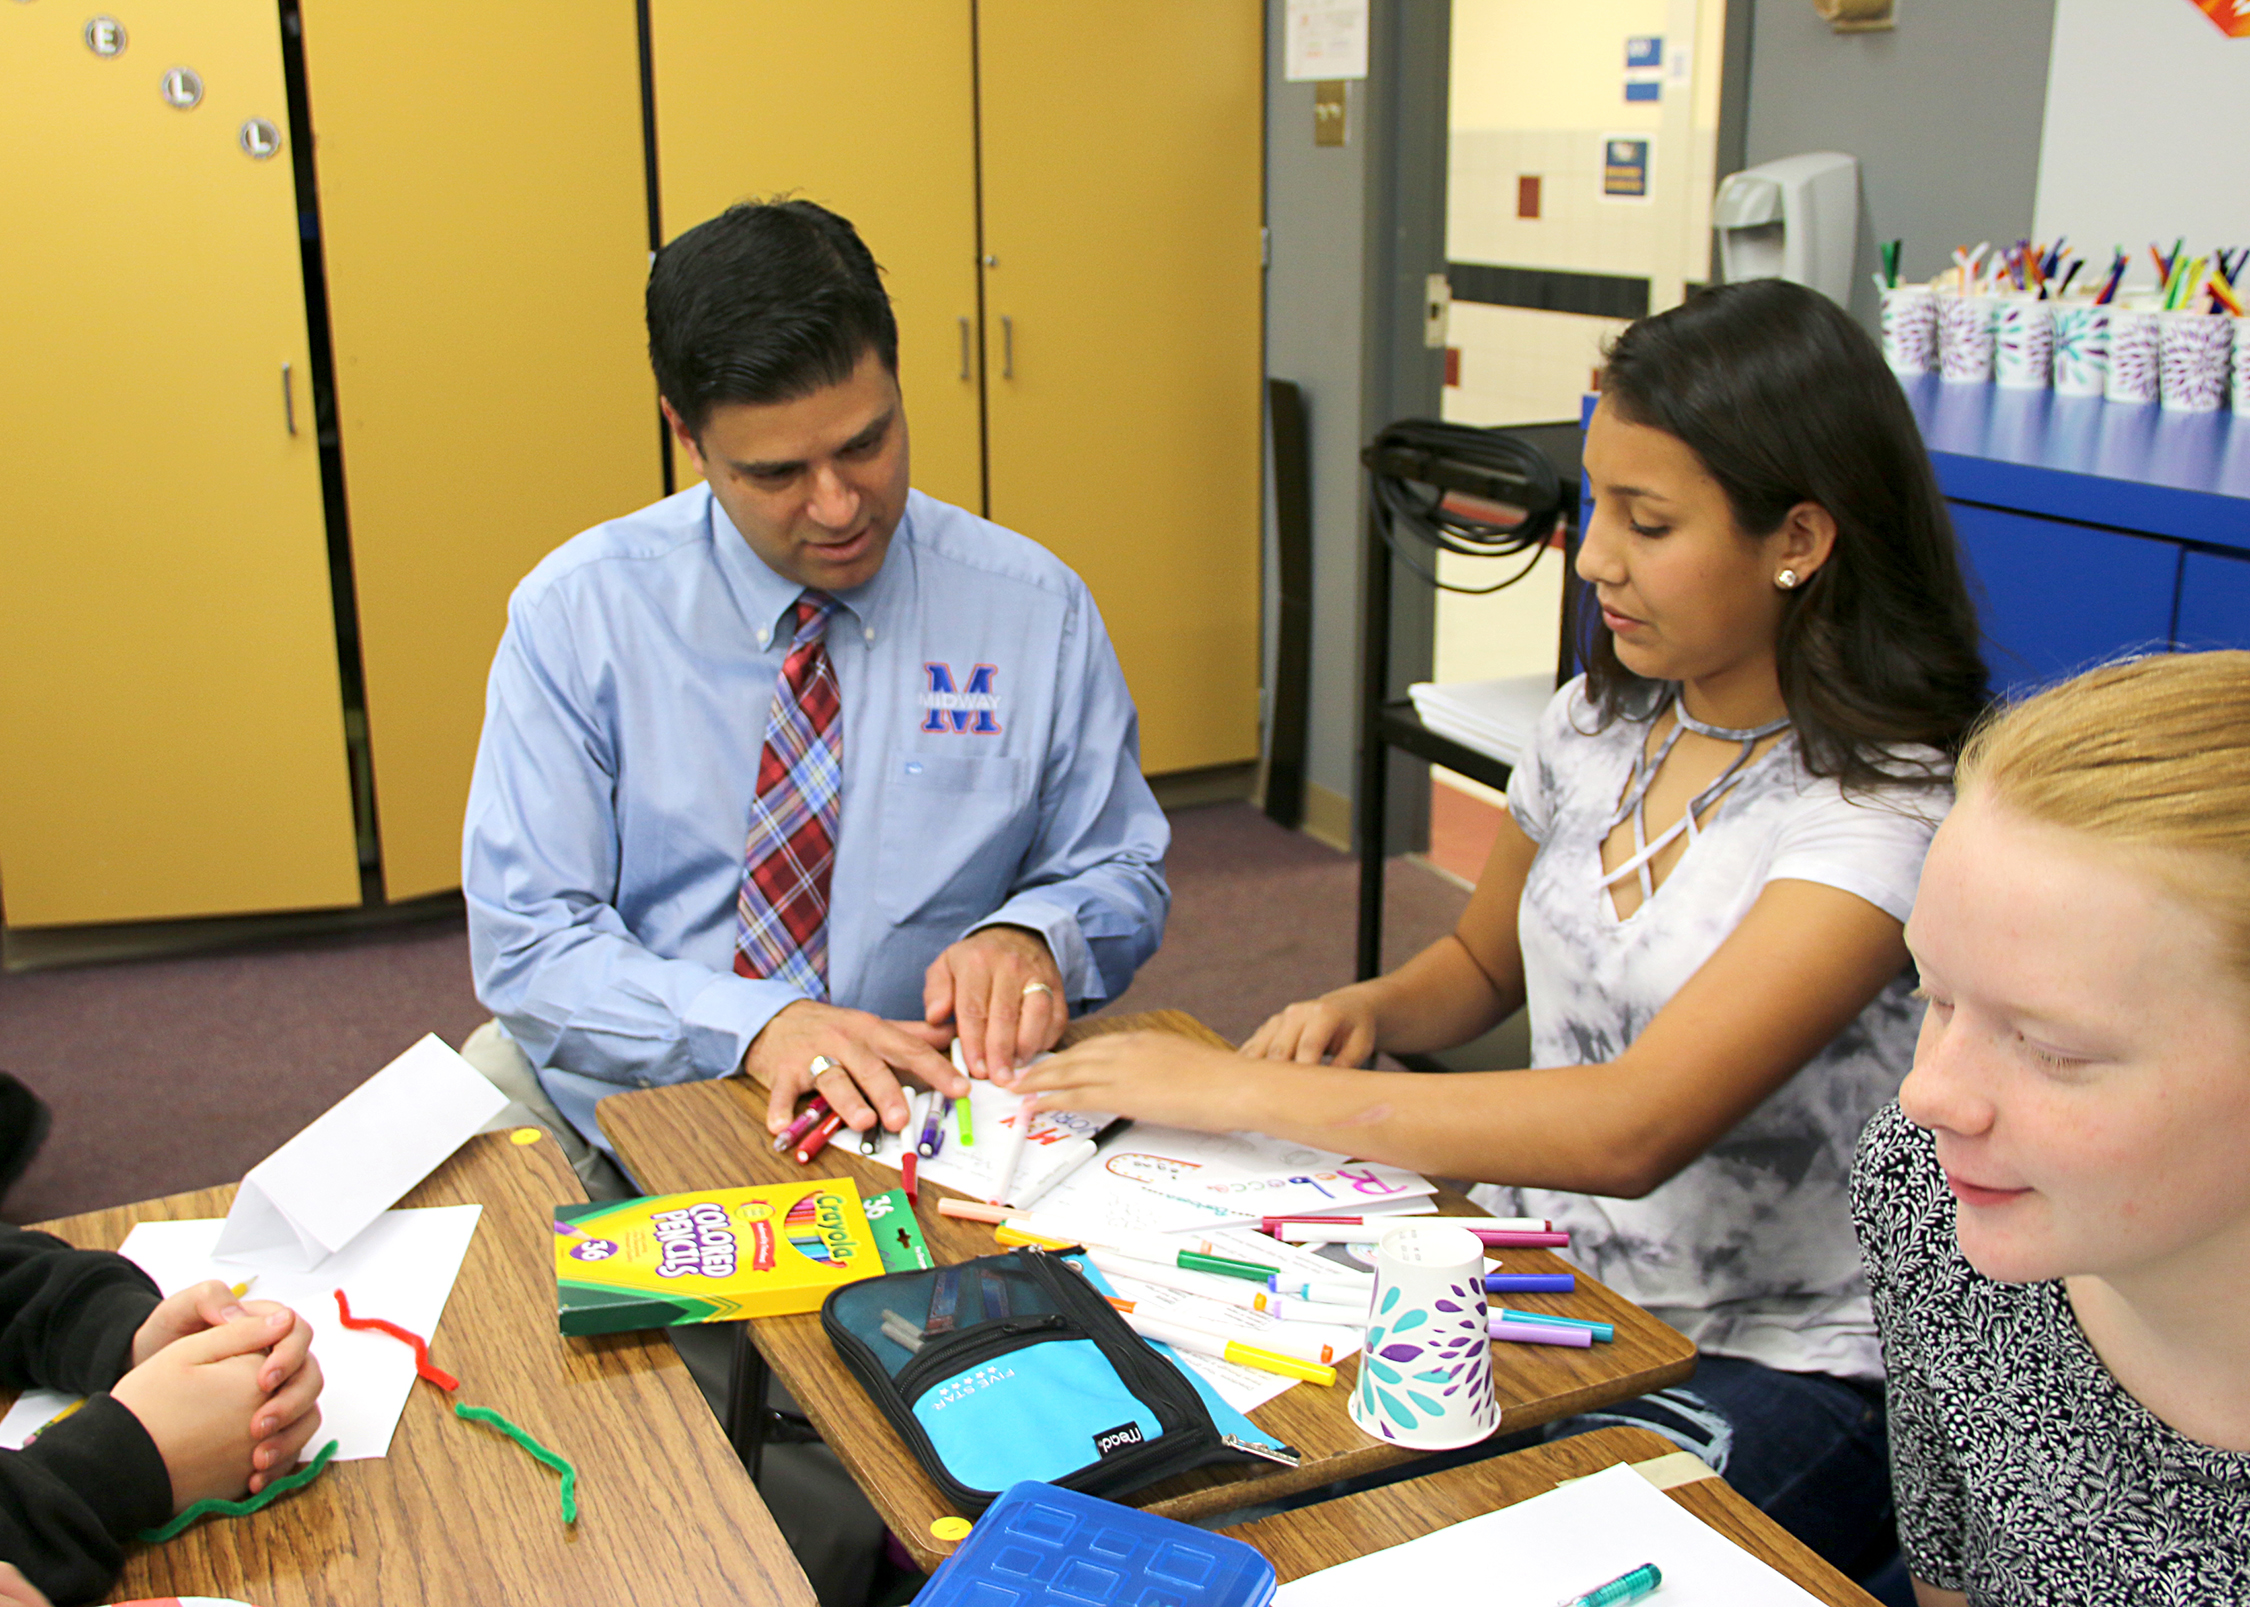 Dr. George Kazanas working with a middle school aged child at a desk